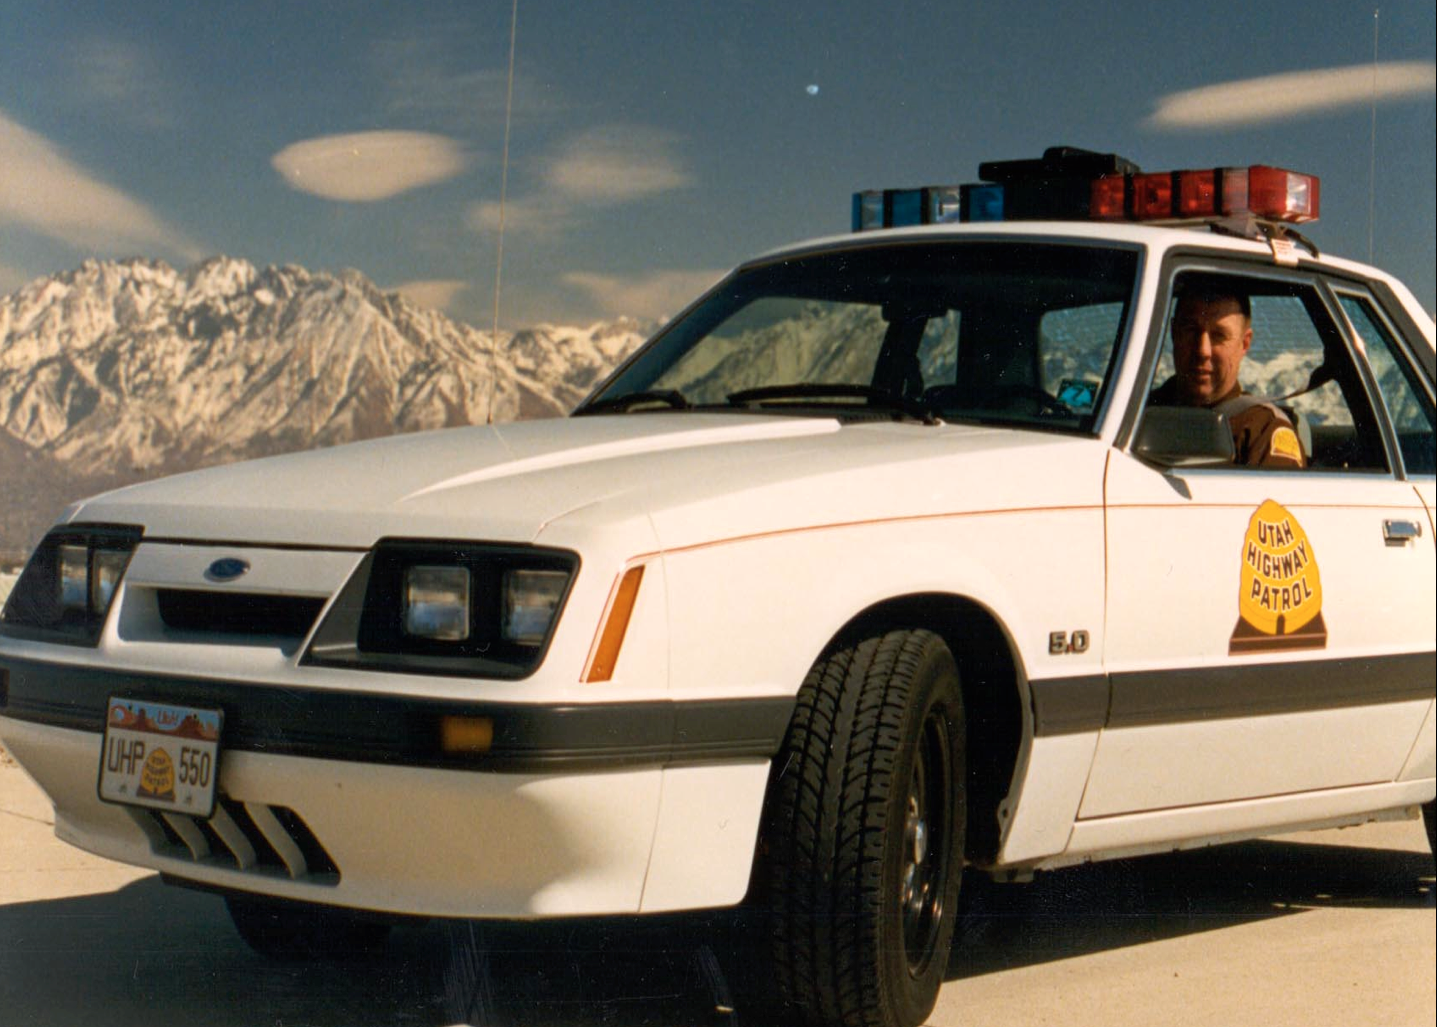 Lt. Norm Steen in a Mustang